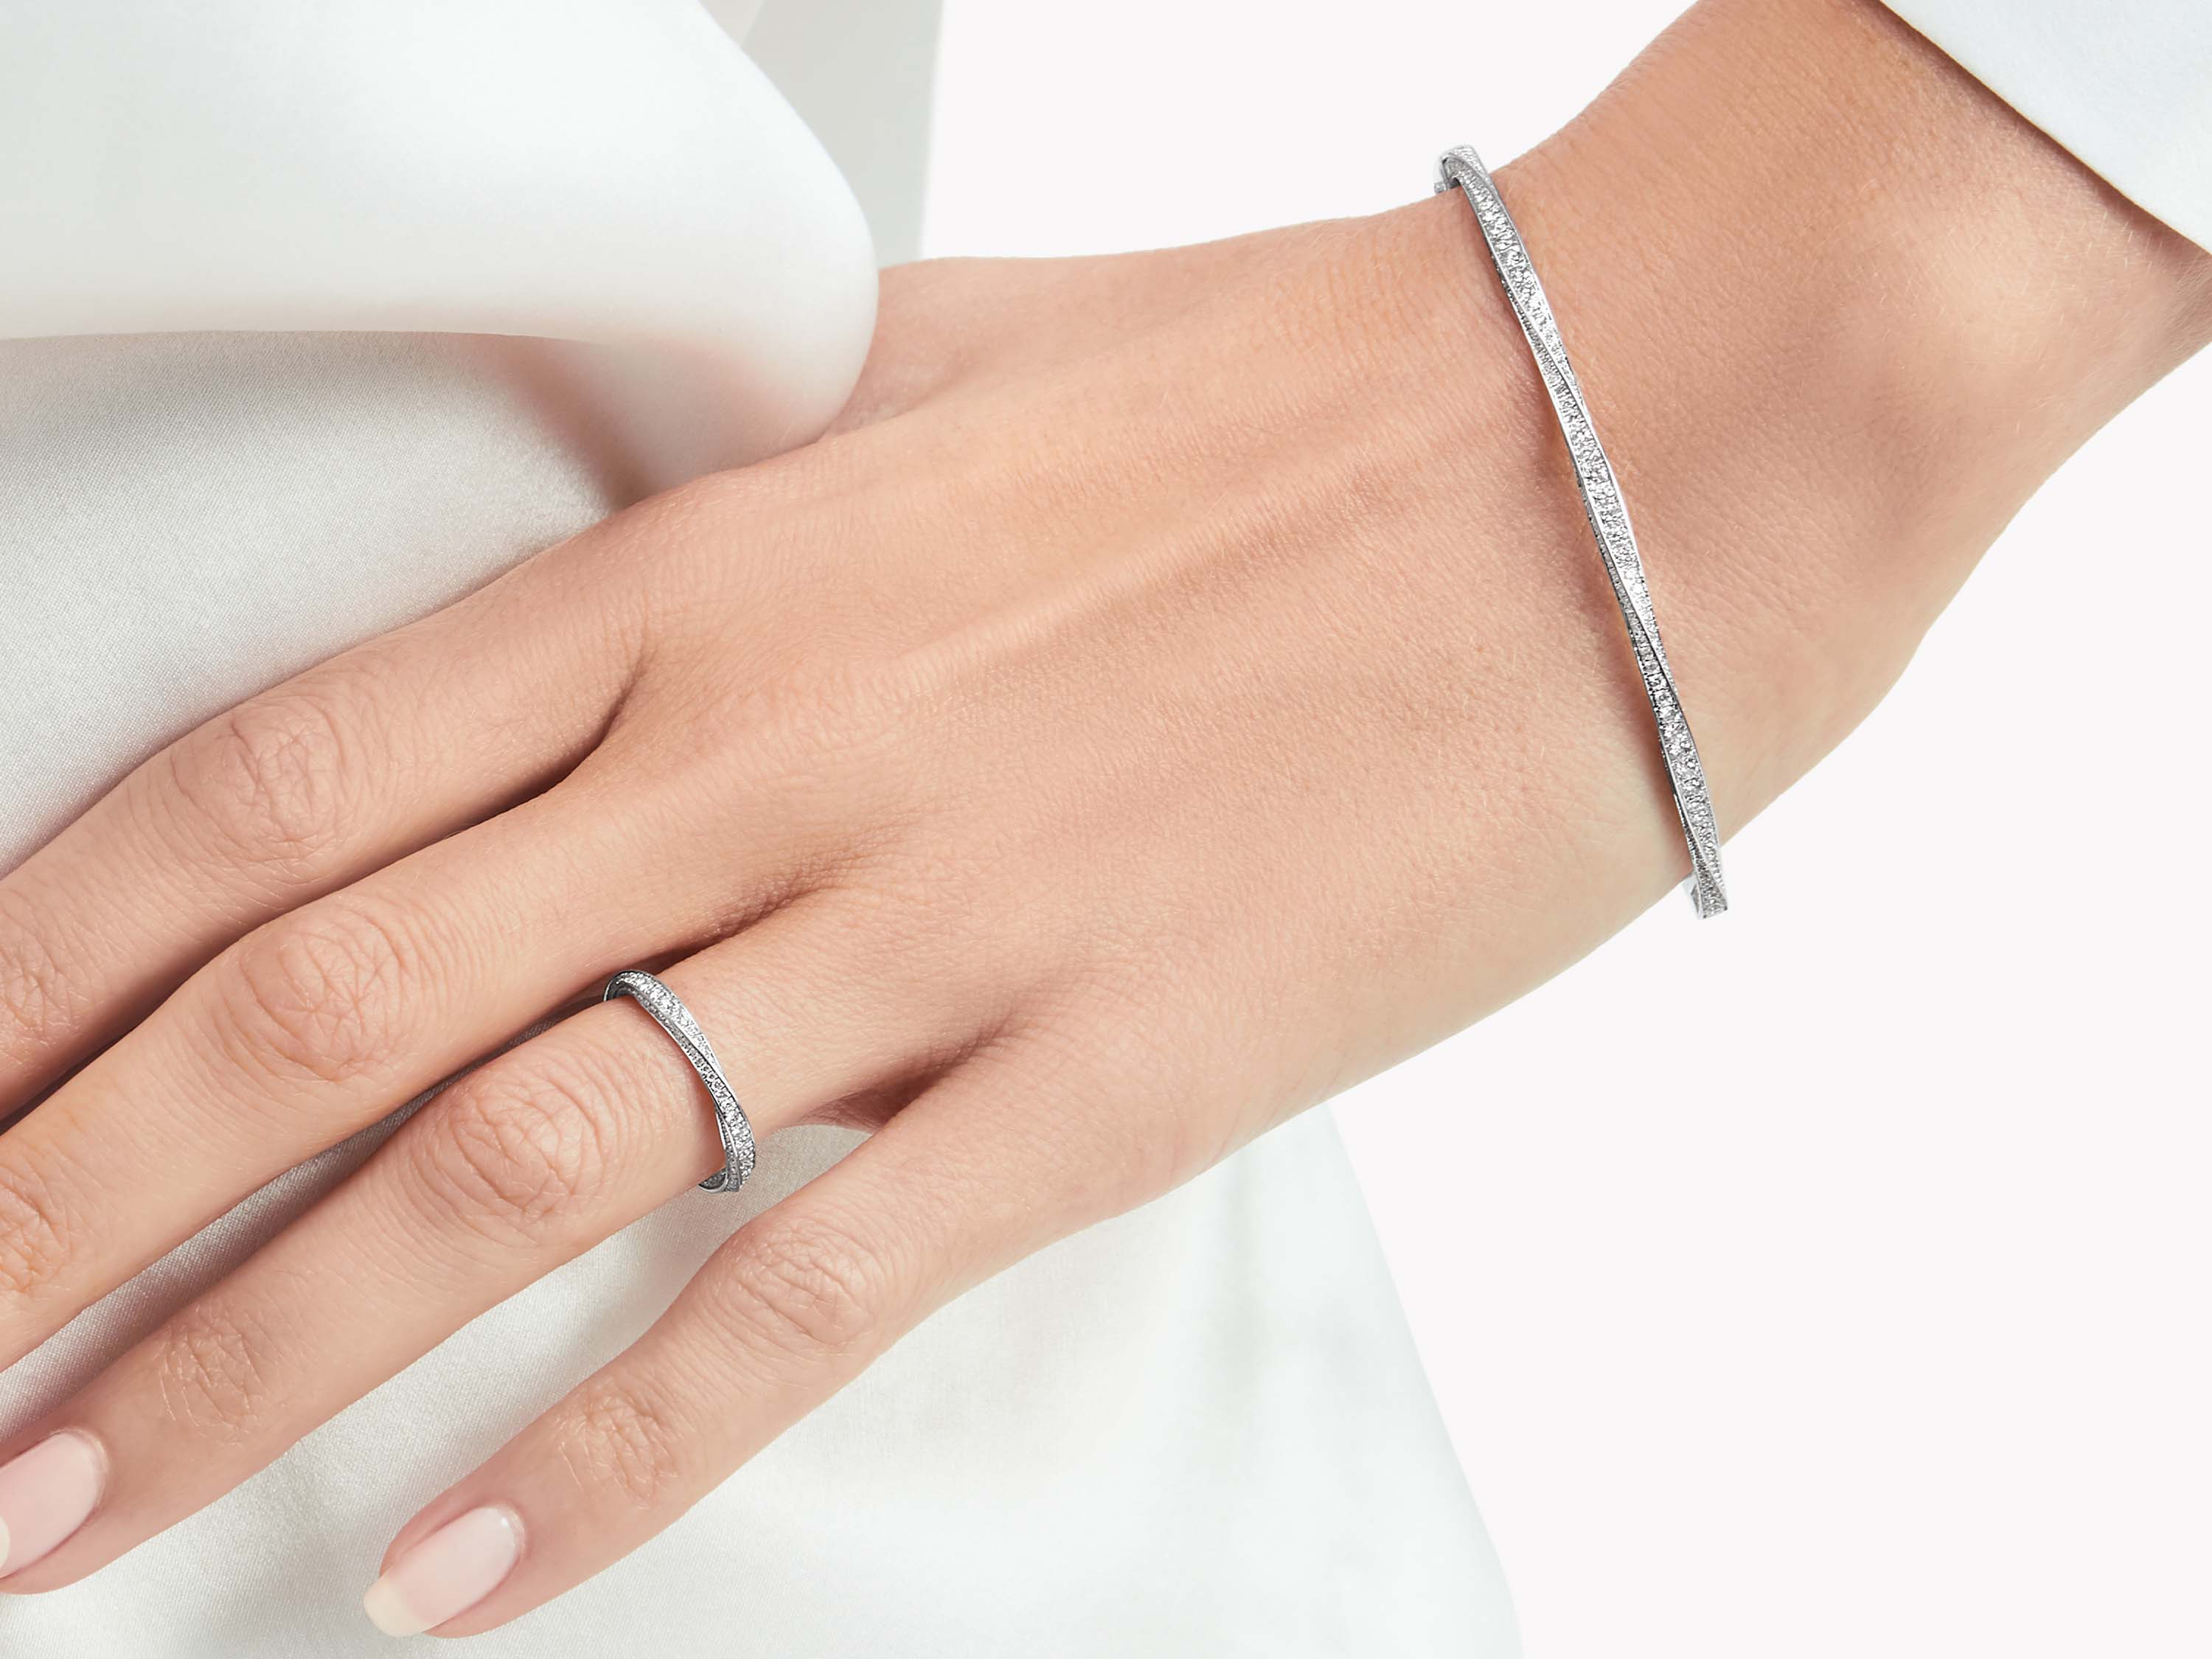 Model wearing Graff Spiral Pavé Diamond Bangle and Spiral Pavé Diamond Band